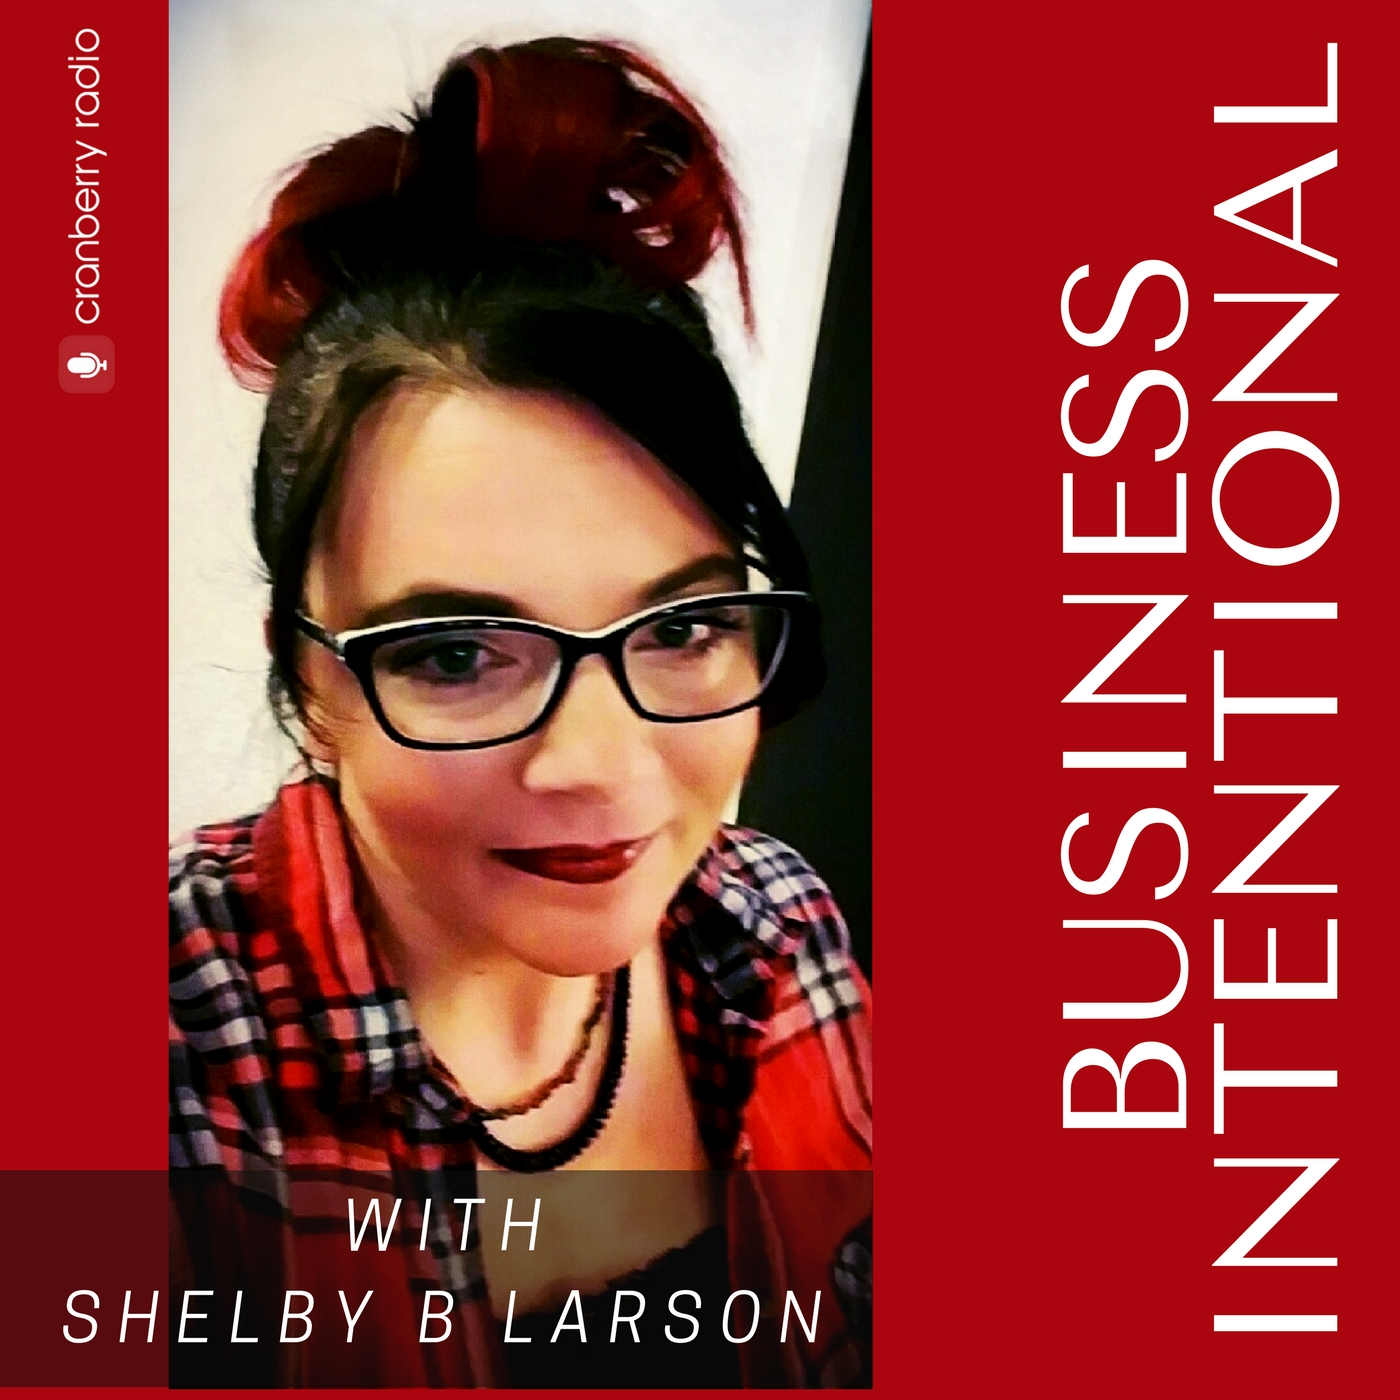 business intentional with shelby b larson webmaster radiobusiness intentional with shelby b larson jpg?mtime\u003d20170321125813